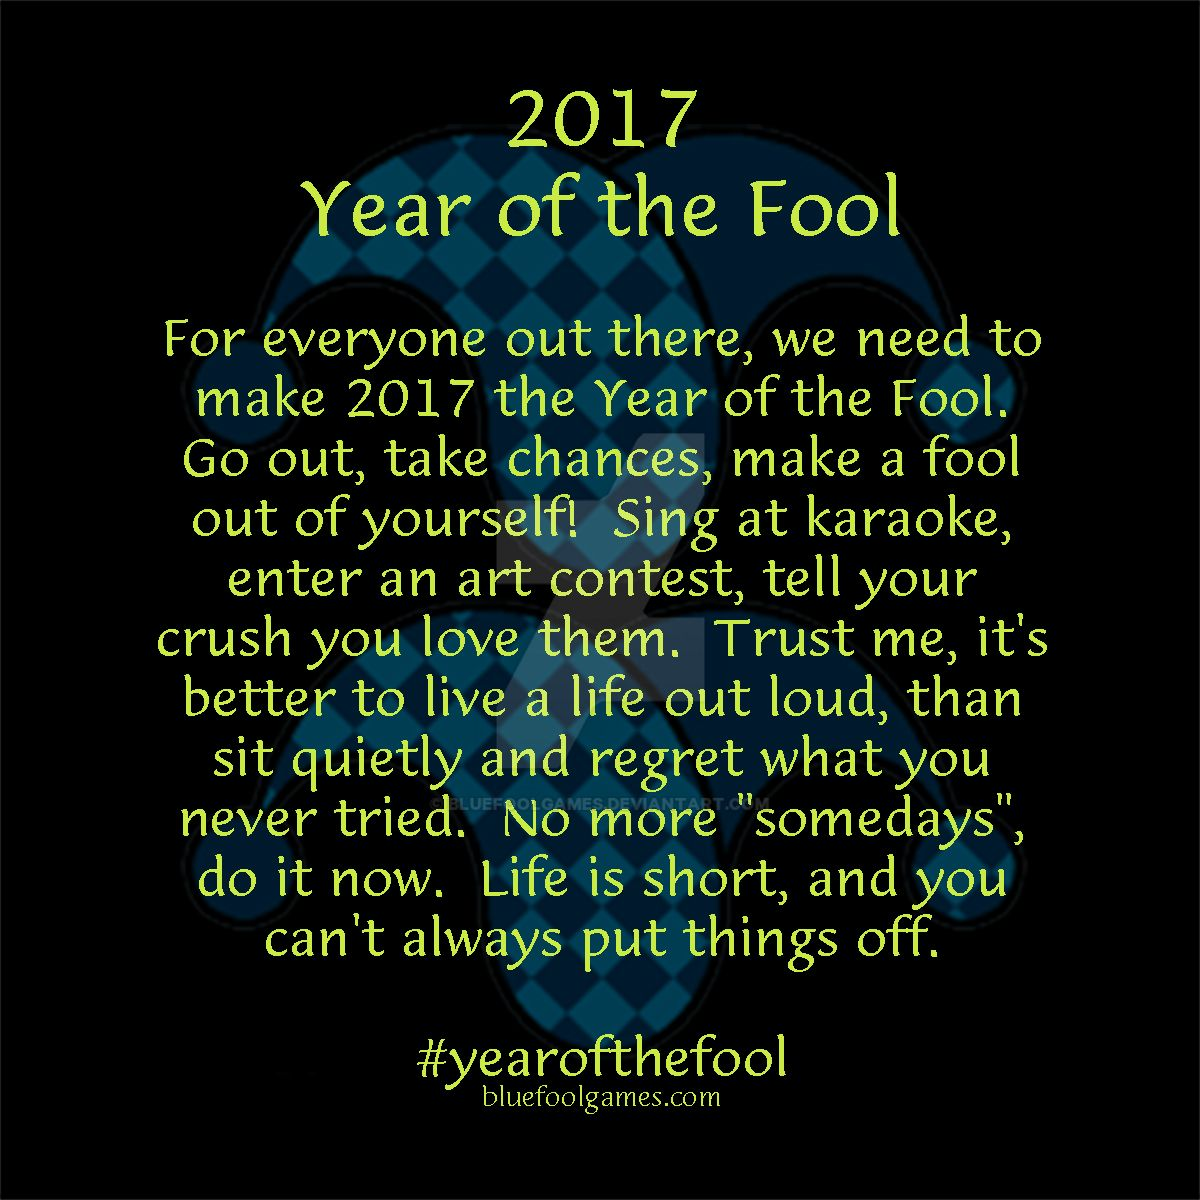 Year of the Fool by BlueFoolGames